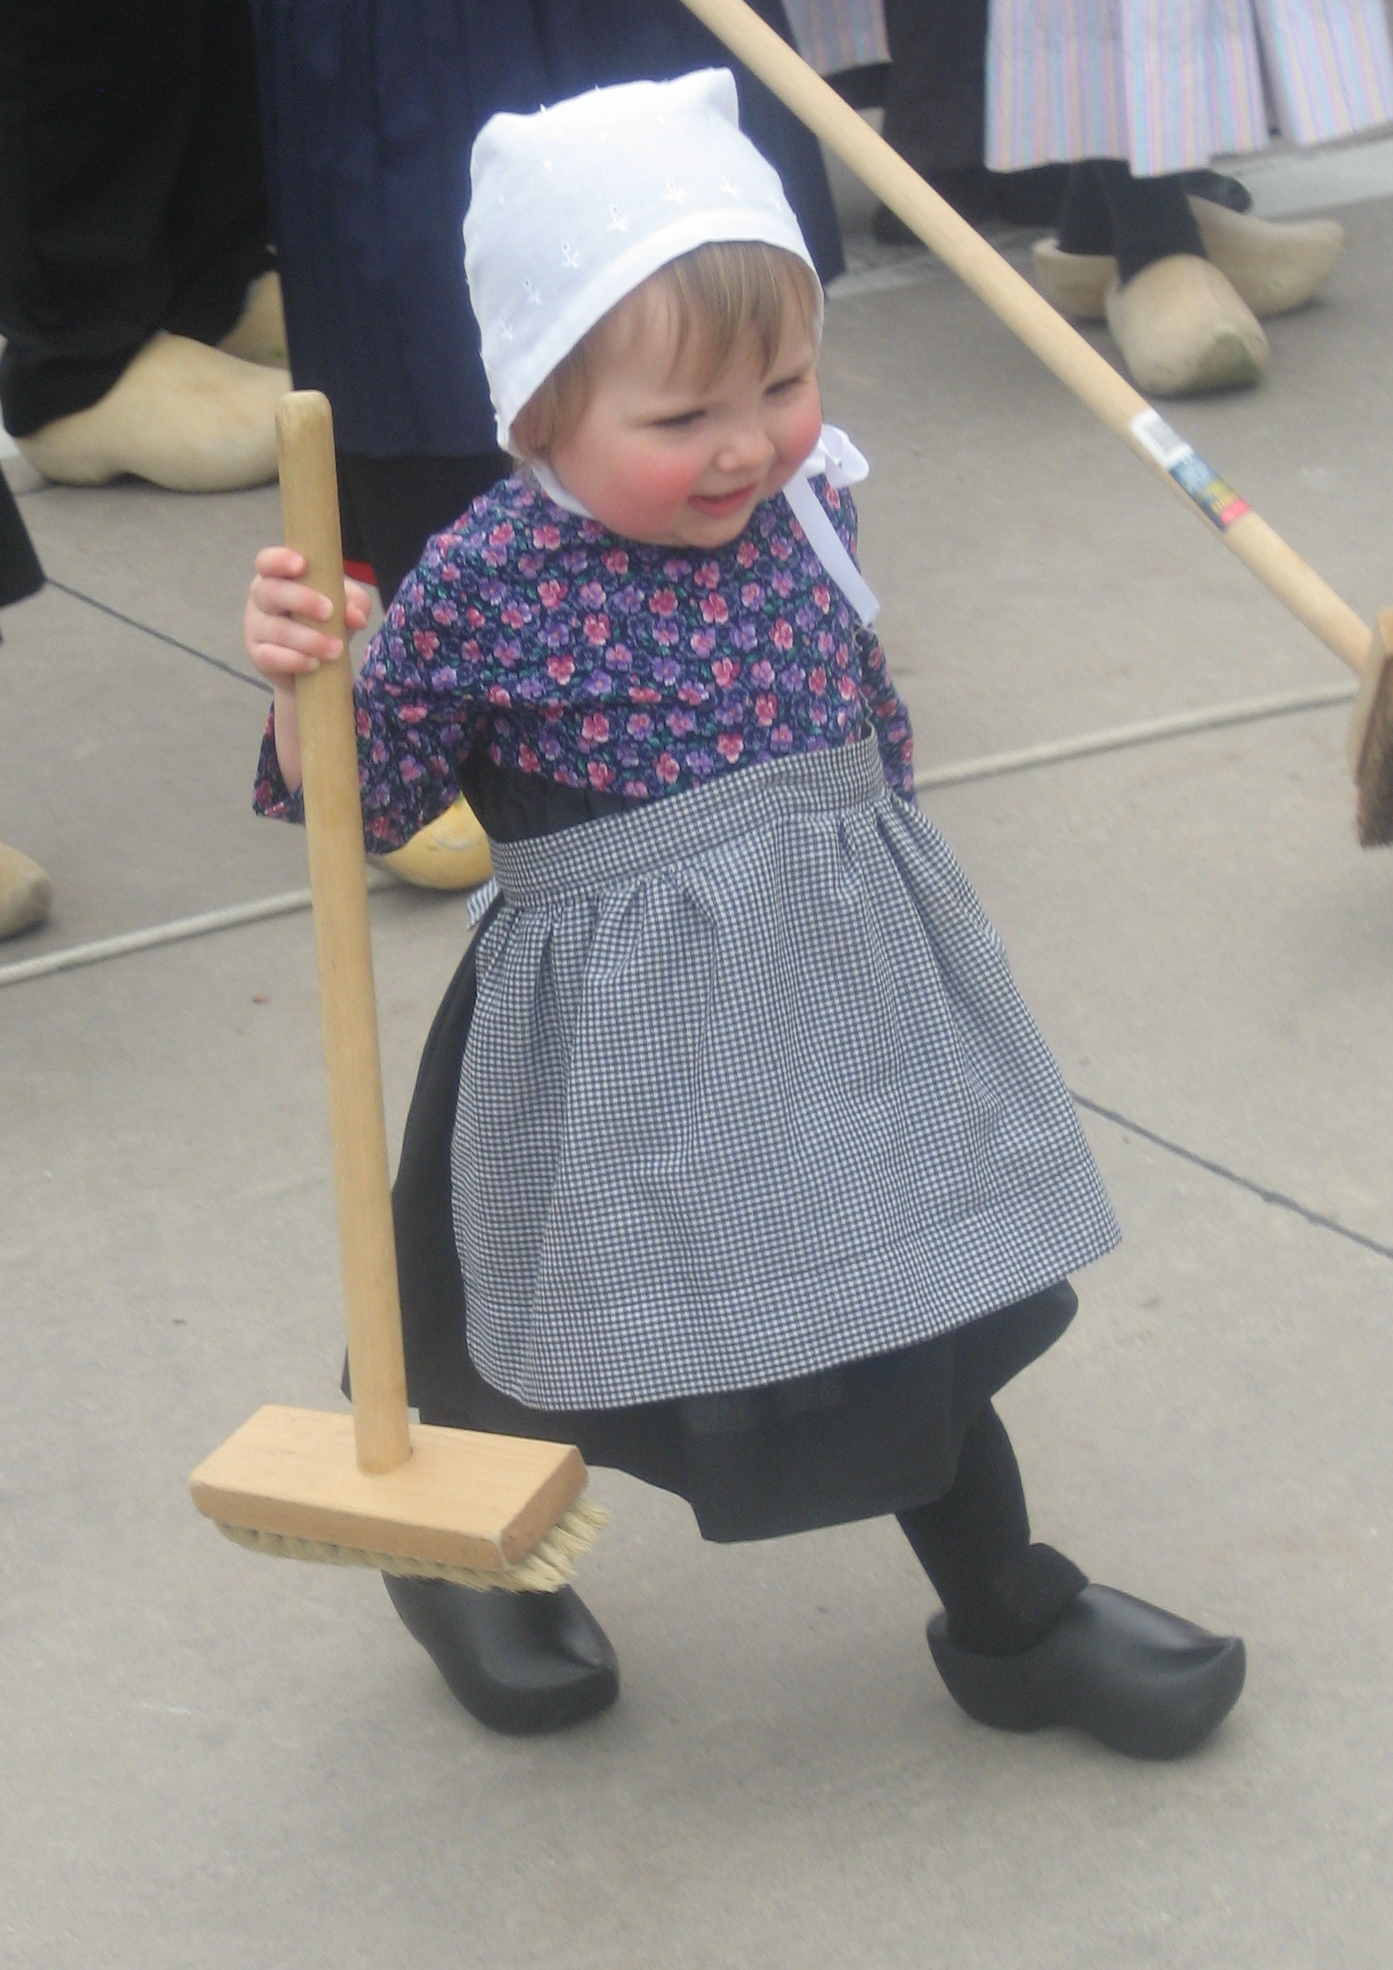 little girl with broom (Klyn)